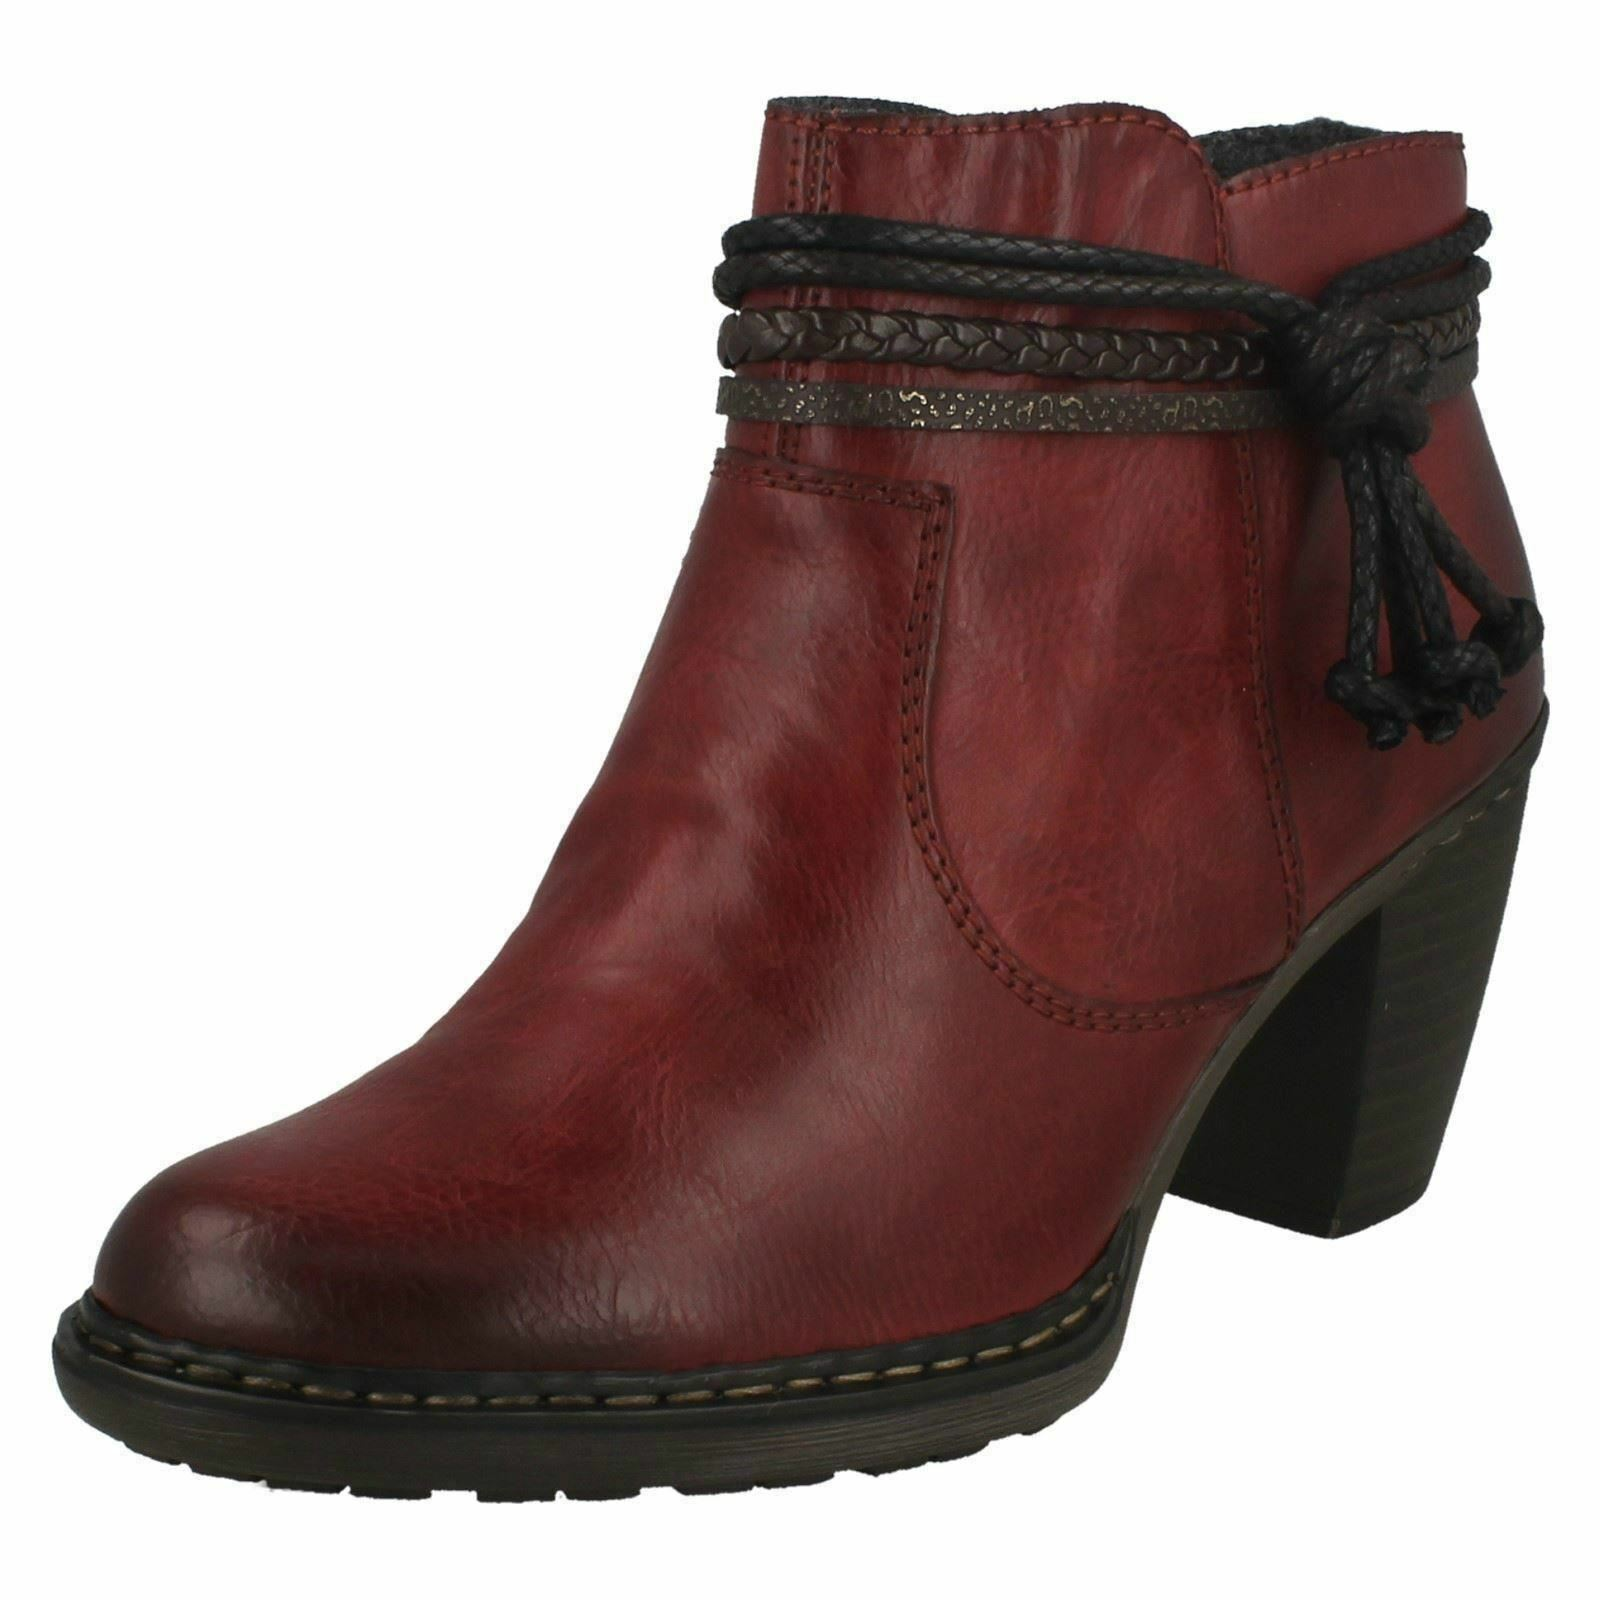 Ladies Rieker 55298 Red Casual Warm Lined Heeled Ankle Boots